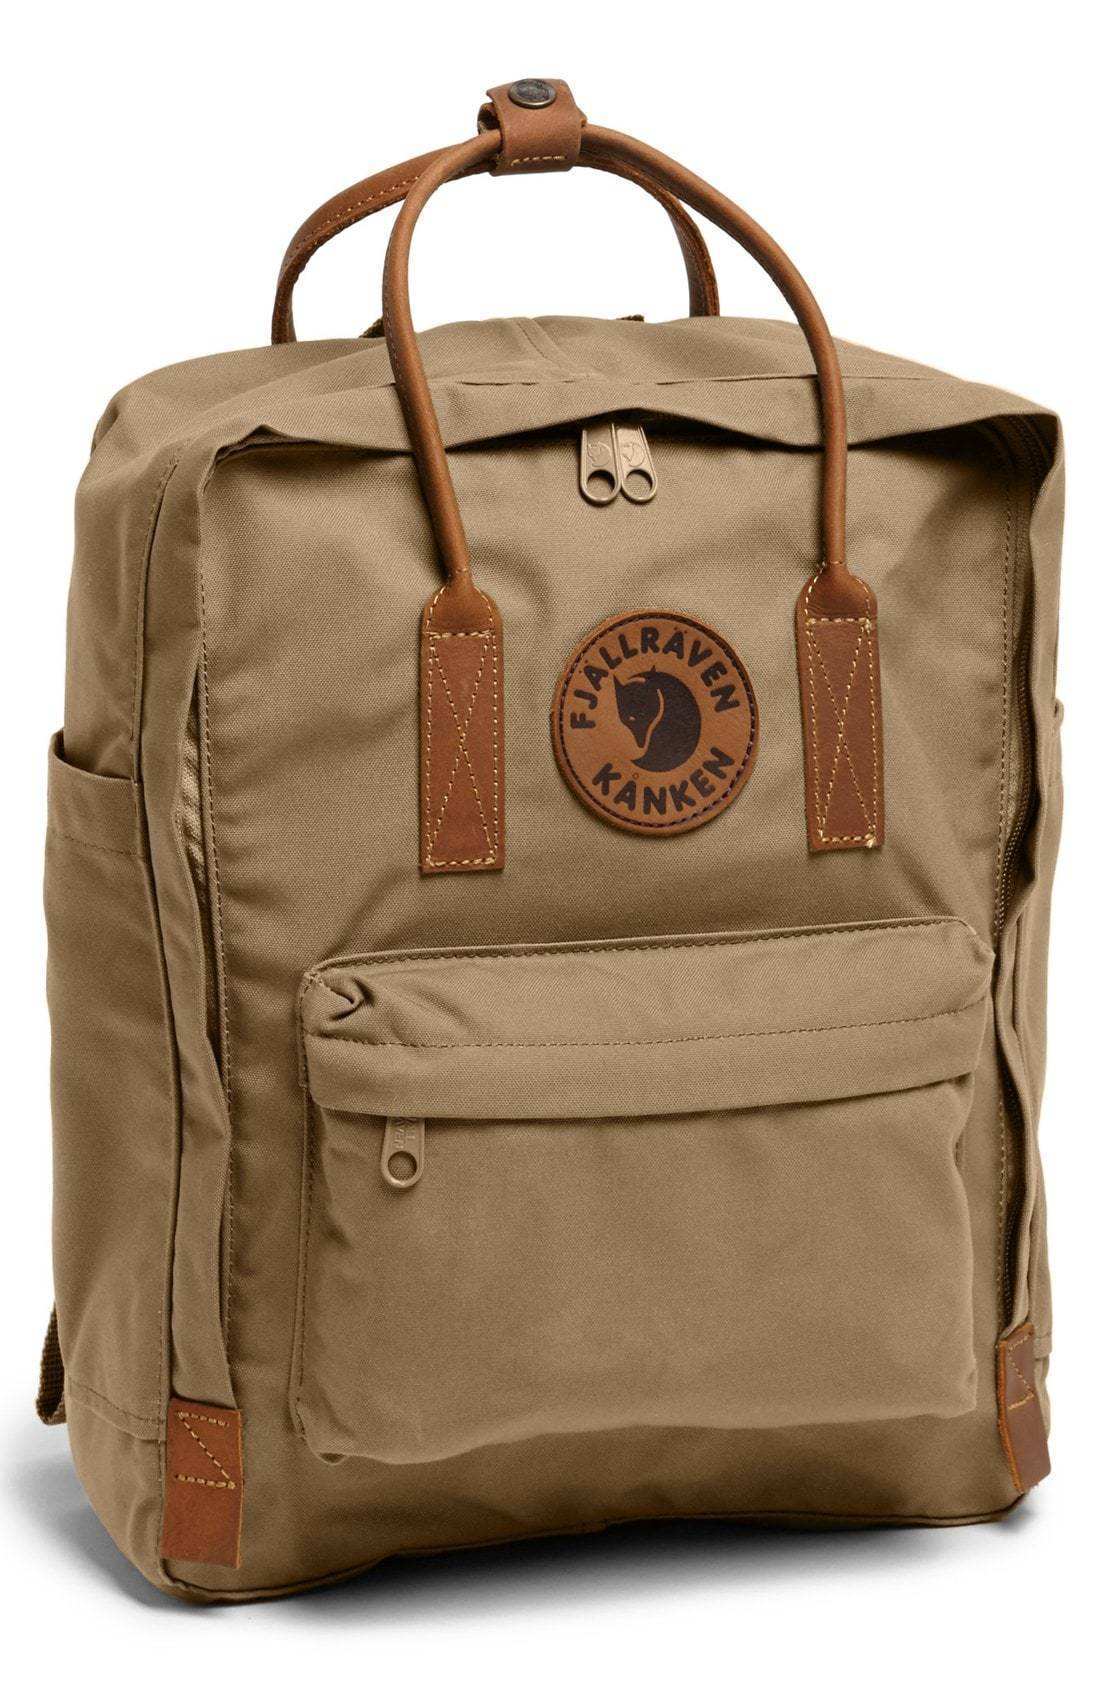 c4cf86d90e FjallRaven Kanken No 2 Backpack